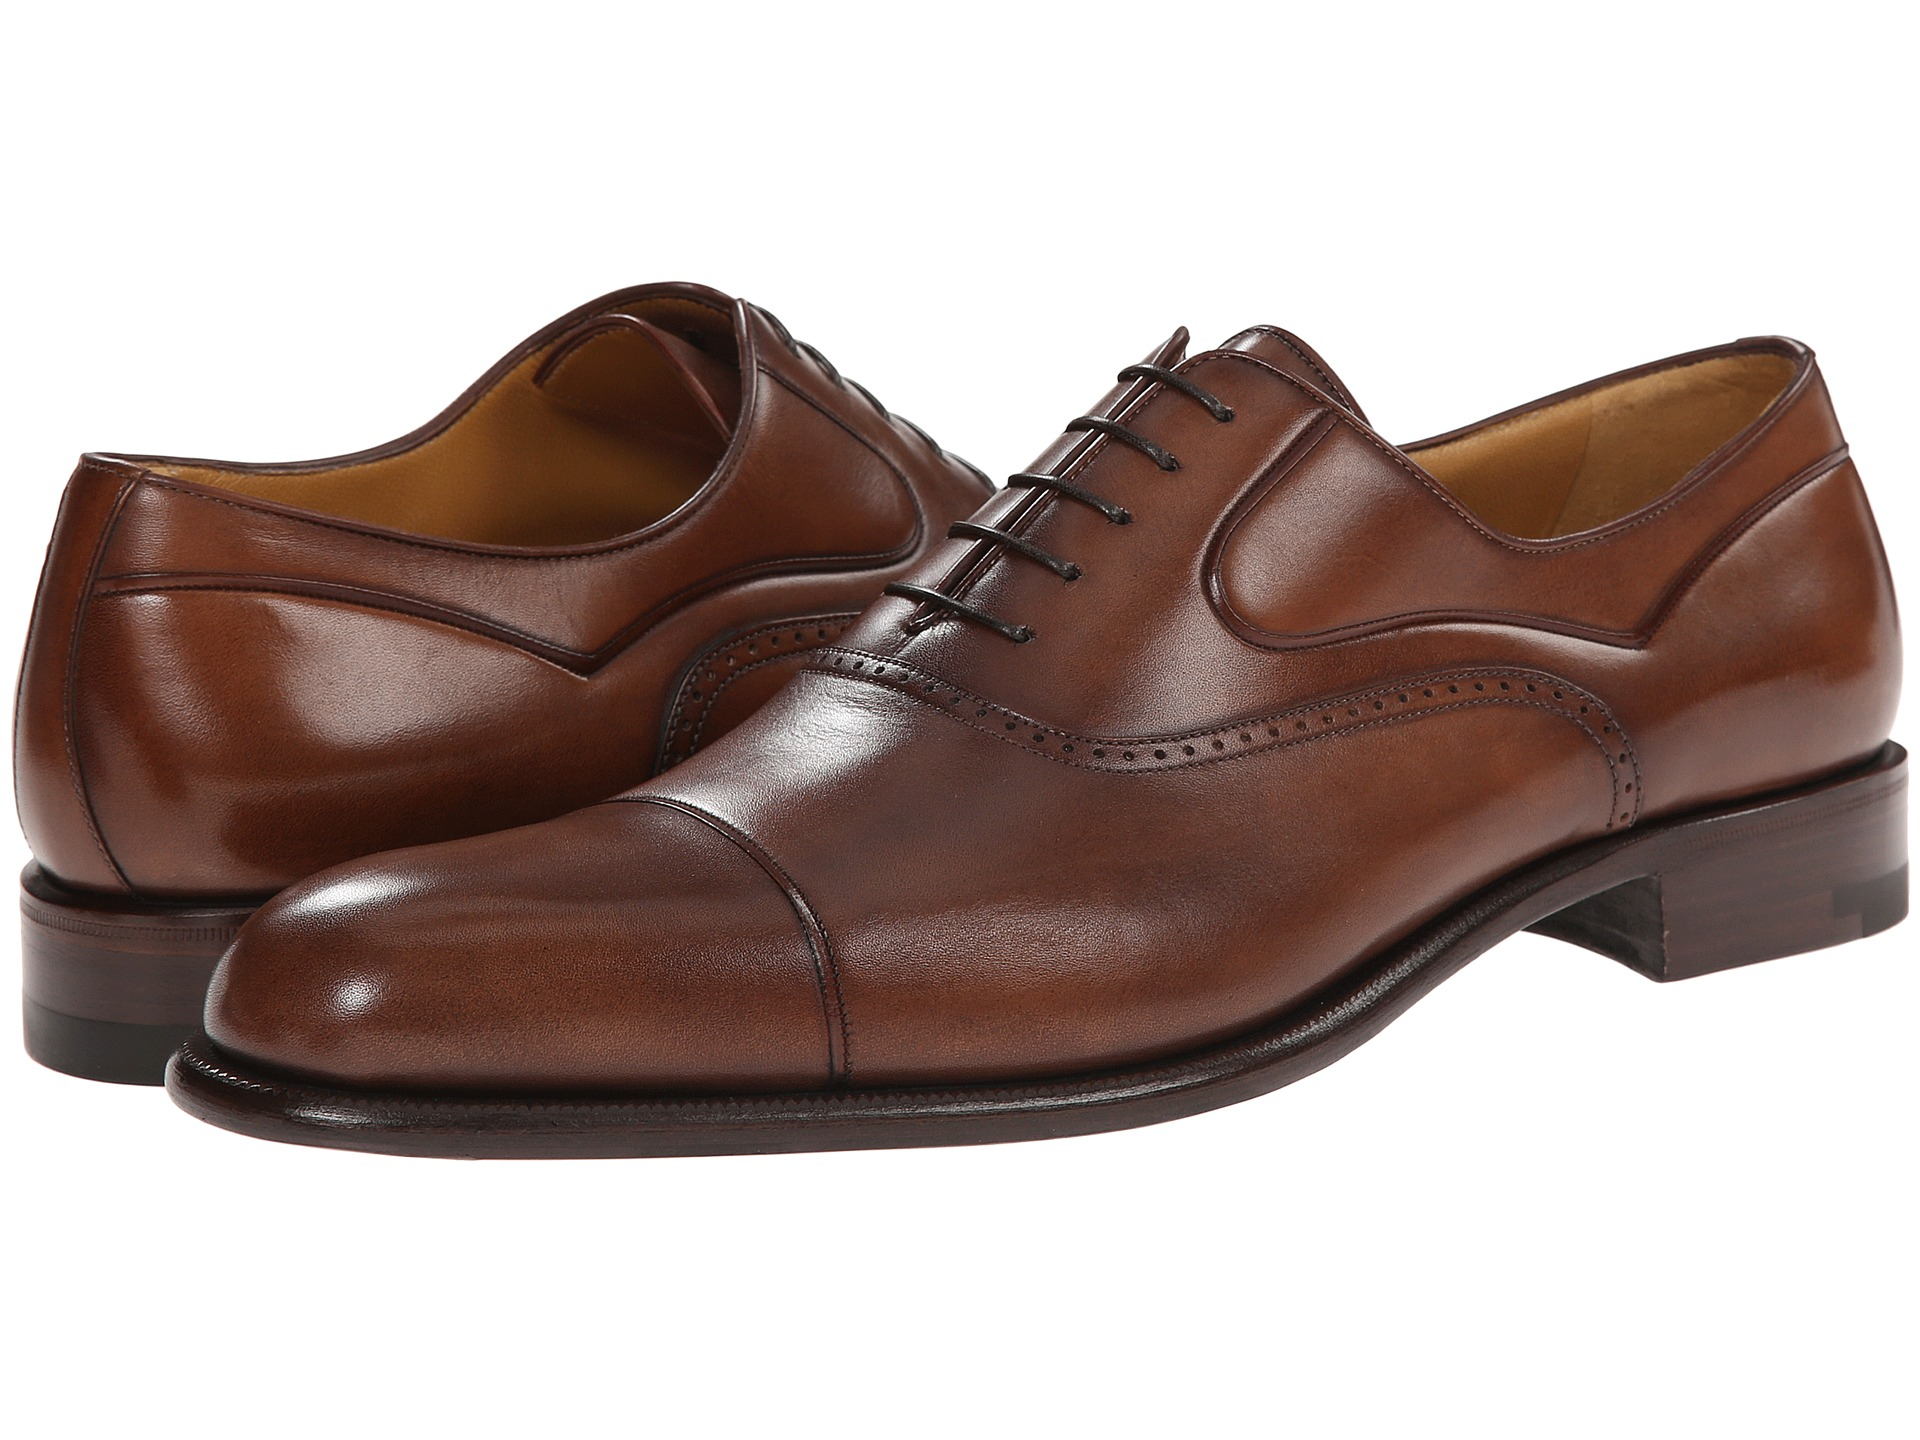 A Testoni Oxford Shoes Washed Calf Leather